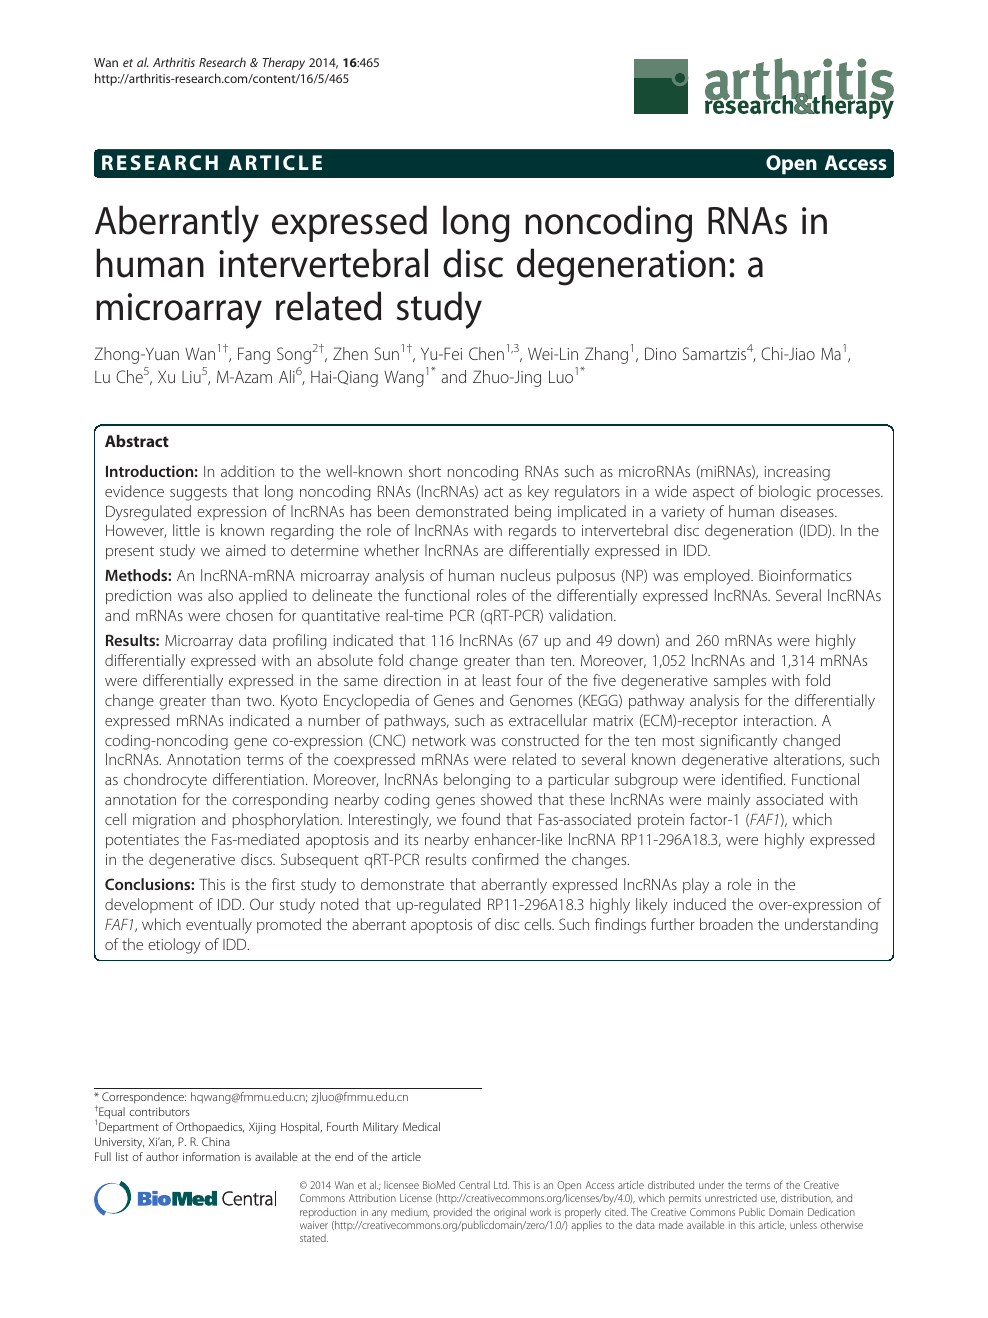 Aberrantly expressed long noncoding RNAs in human